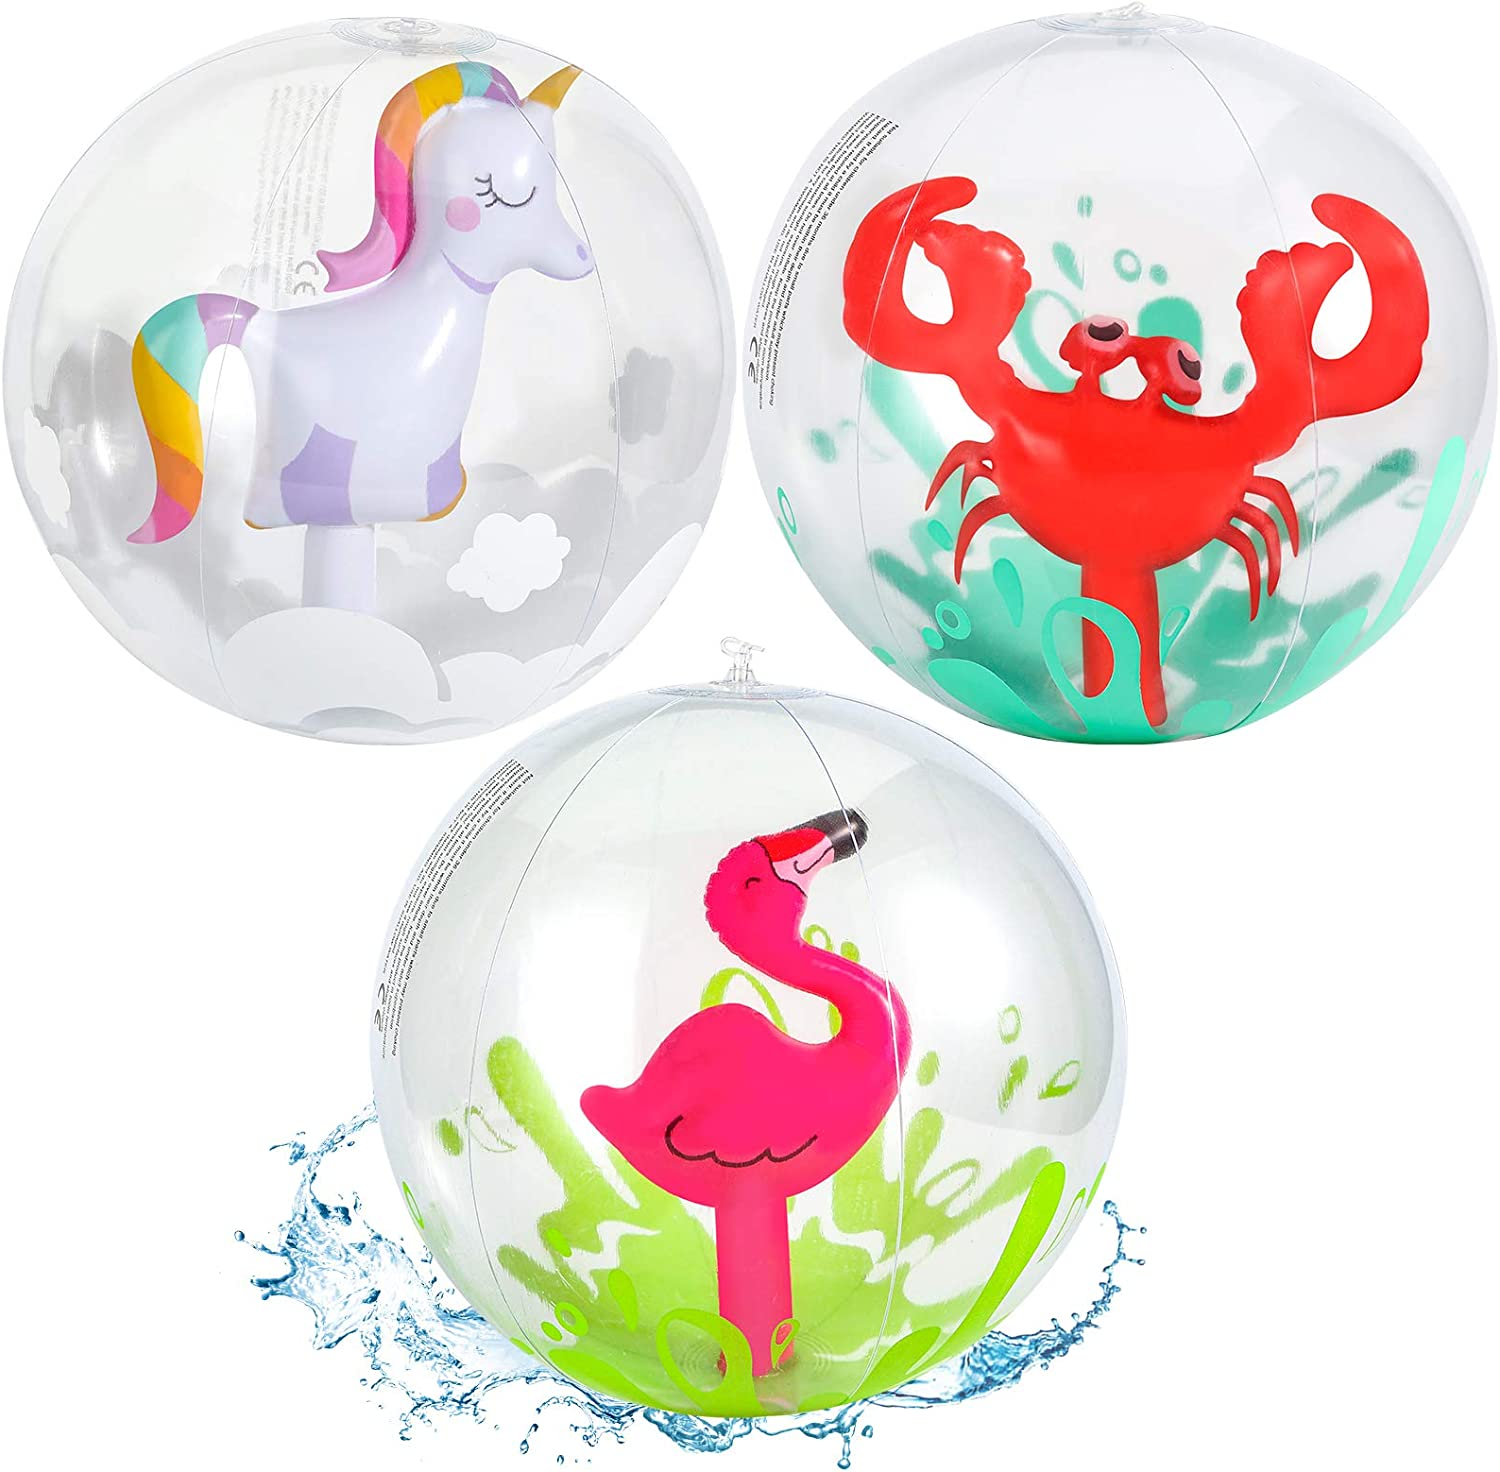 AMOR 3 Pieces 3D Beach Balls, 13 Inch Inflatable Beach Ball for Kids, Pool Toy Balls for Summer Beach Pool Party Favor Home Decoration: Sports & Outdoors